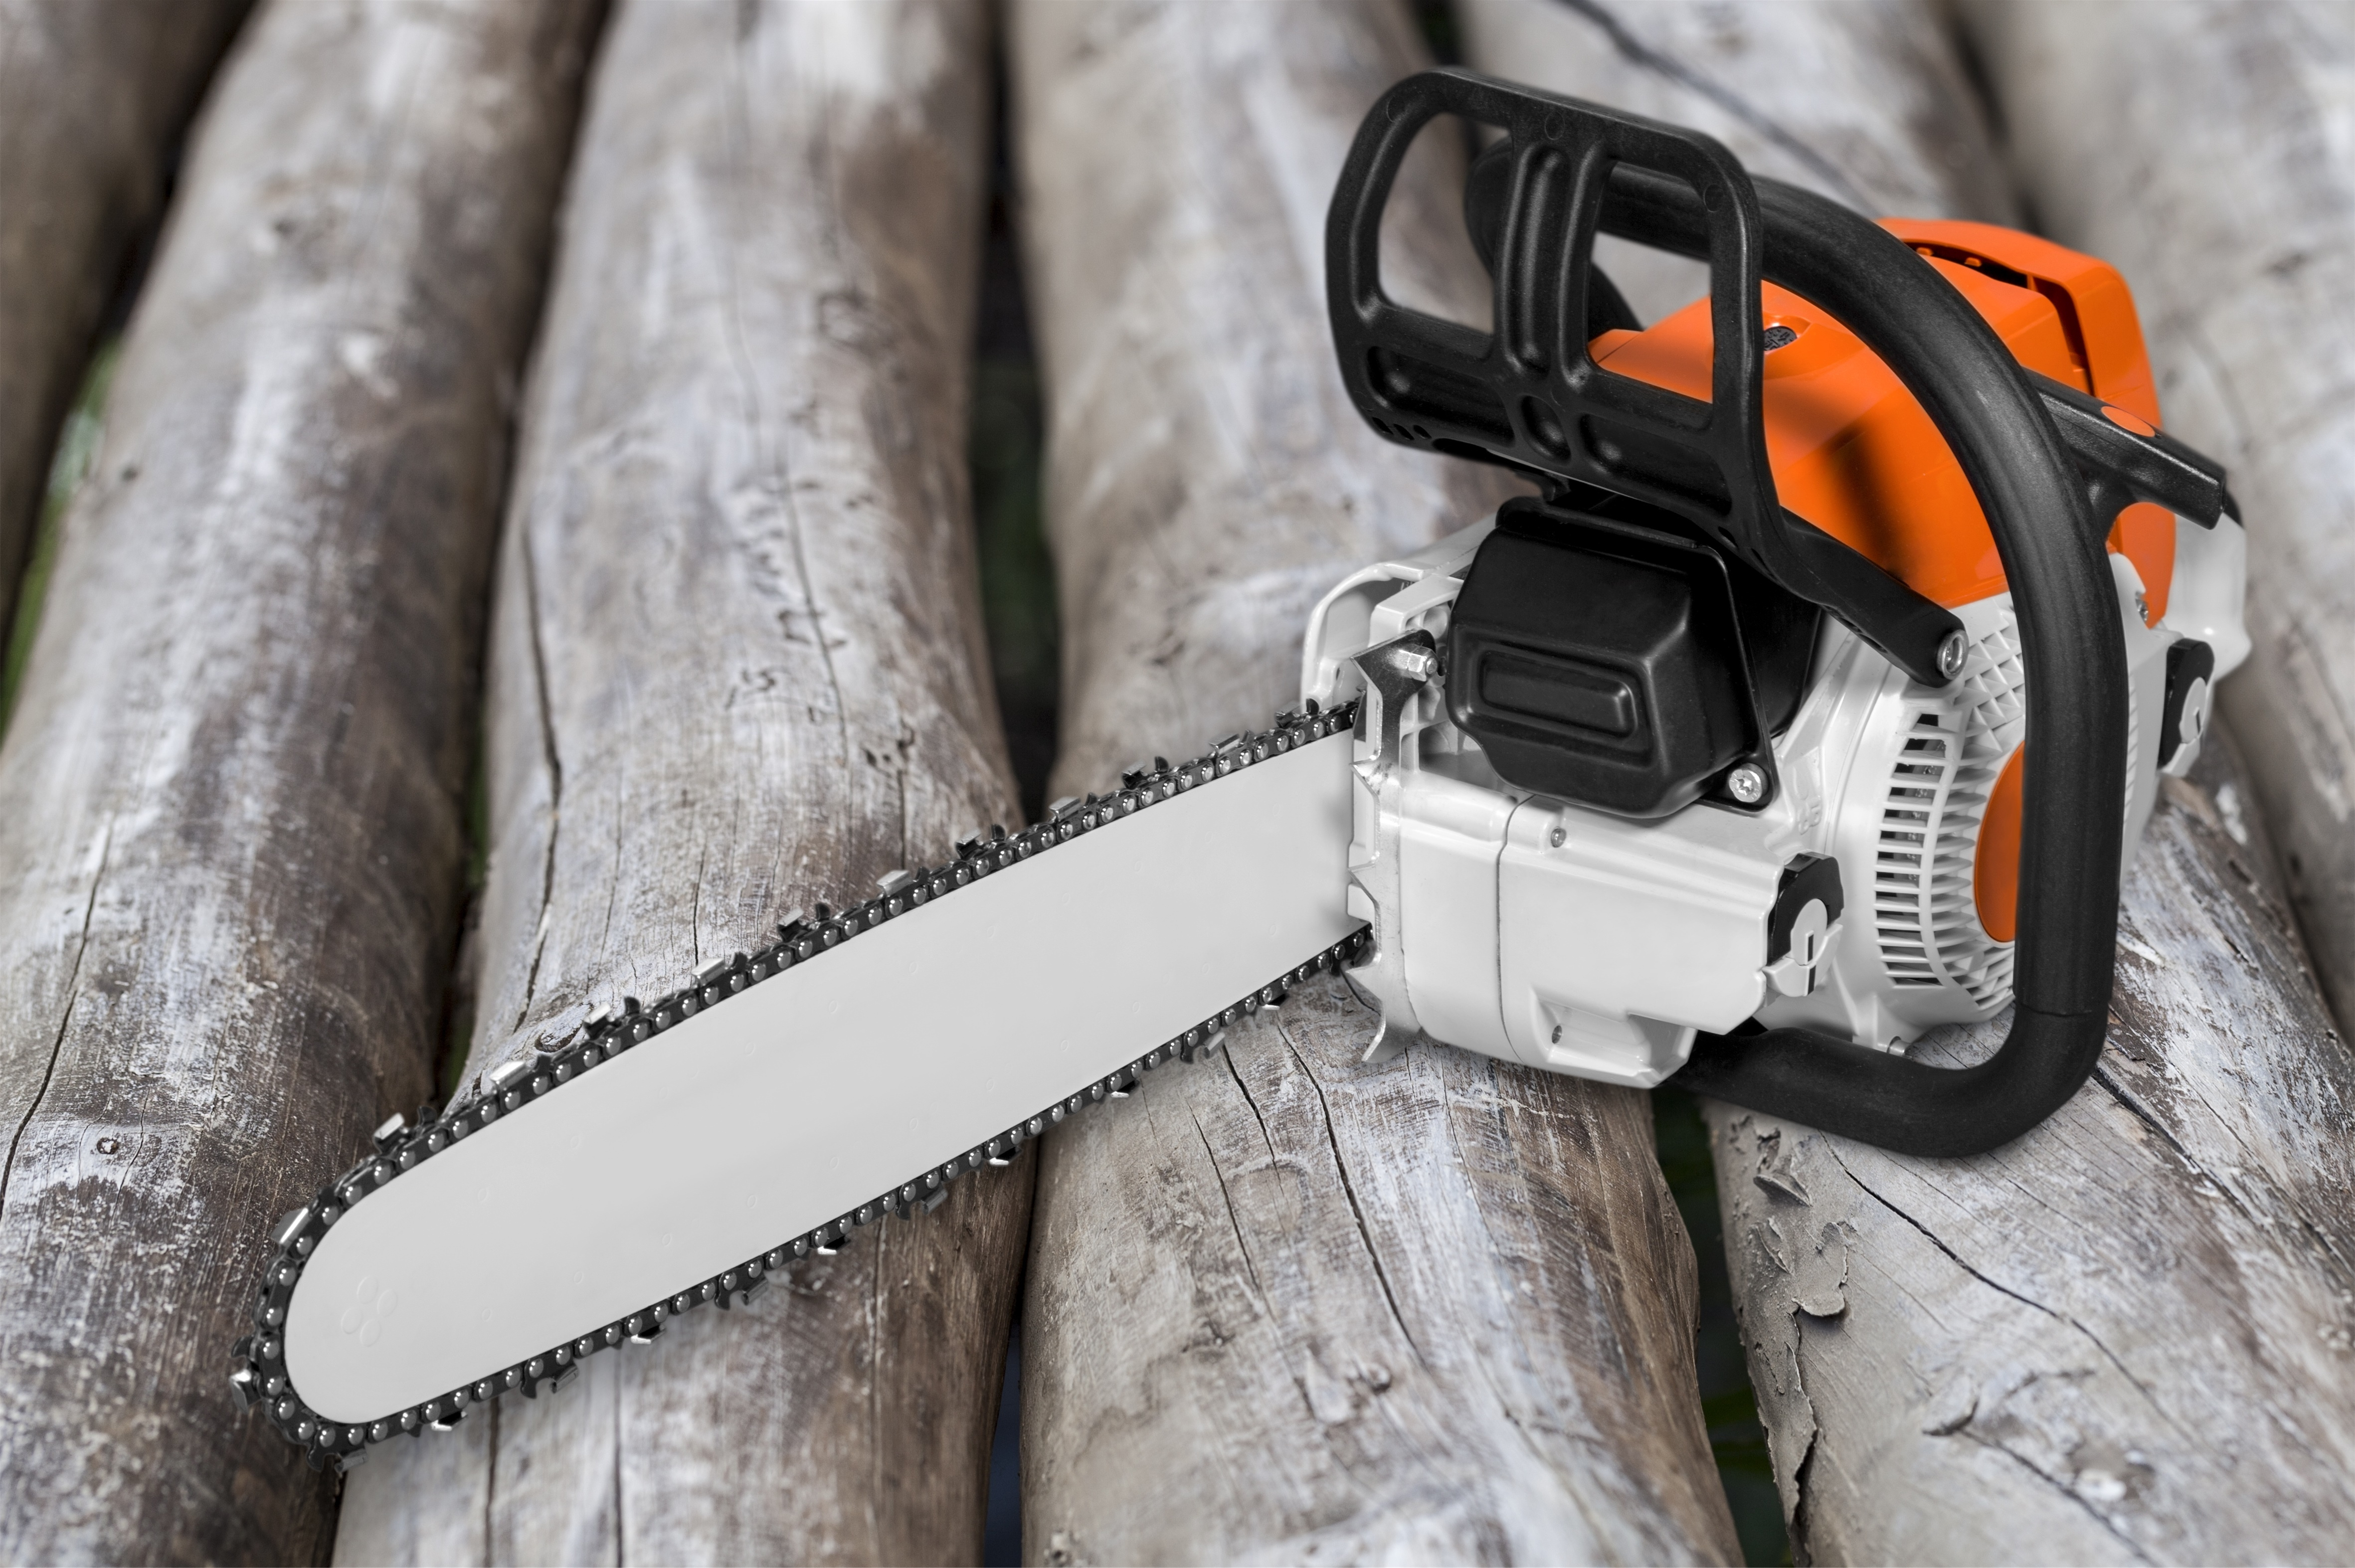 What is the Gas-Oil Ratio For A Chainsaw? | Hunker